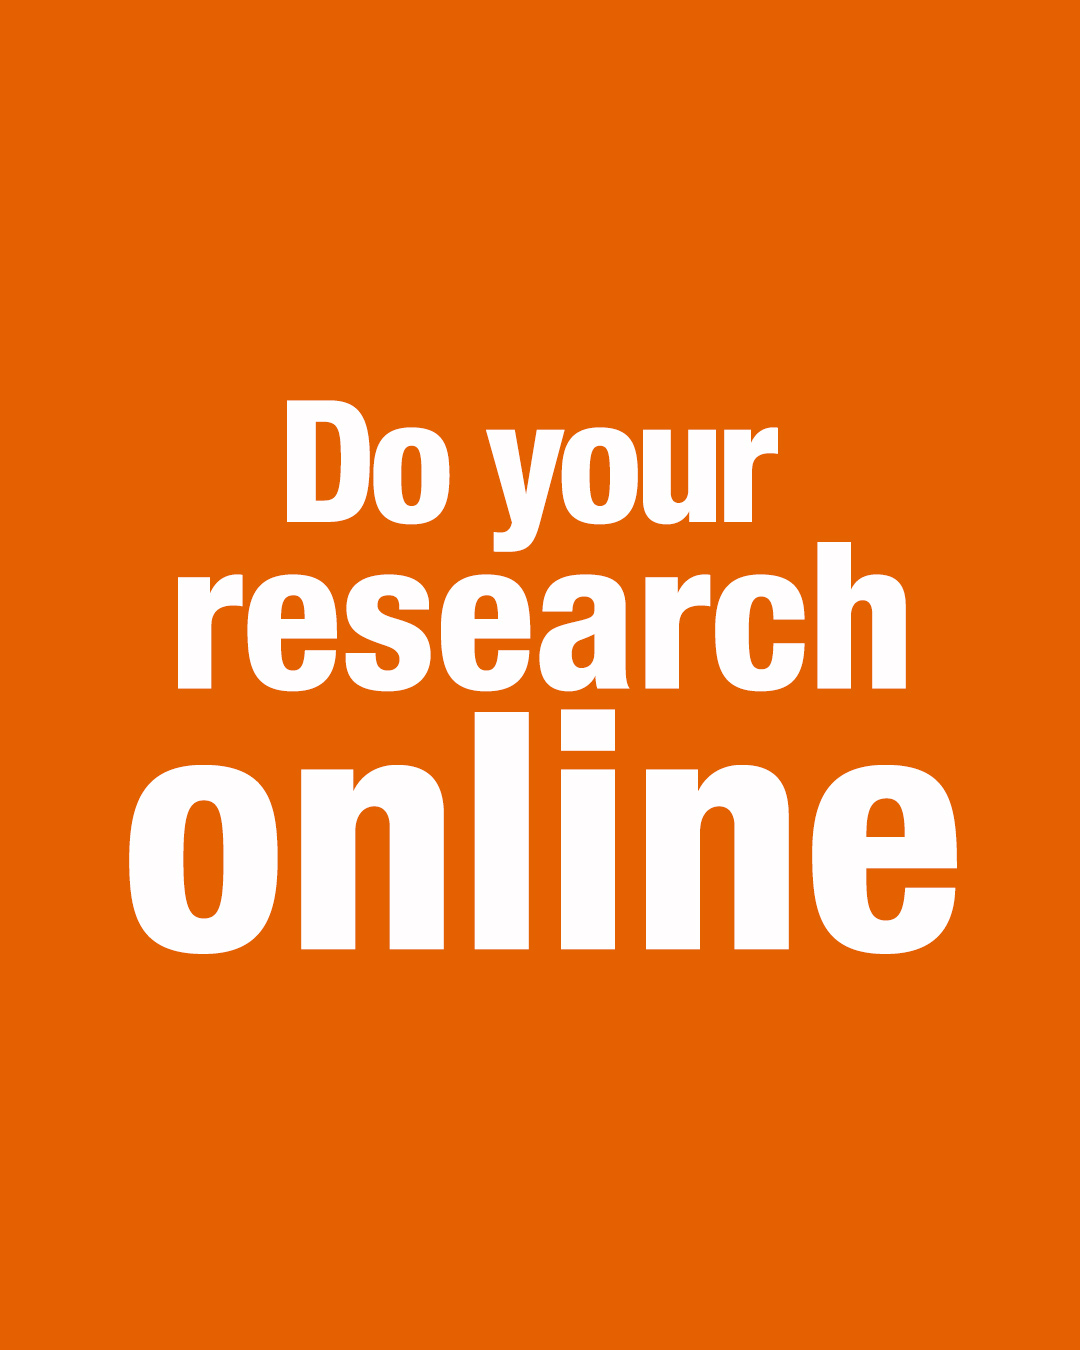 Do you research online